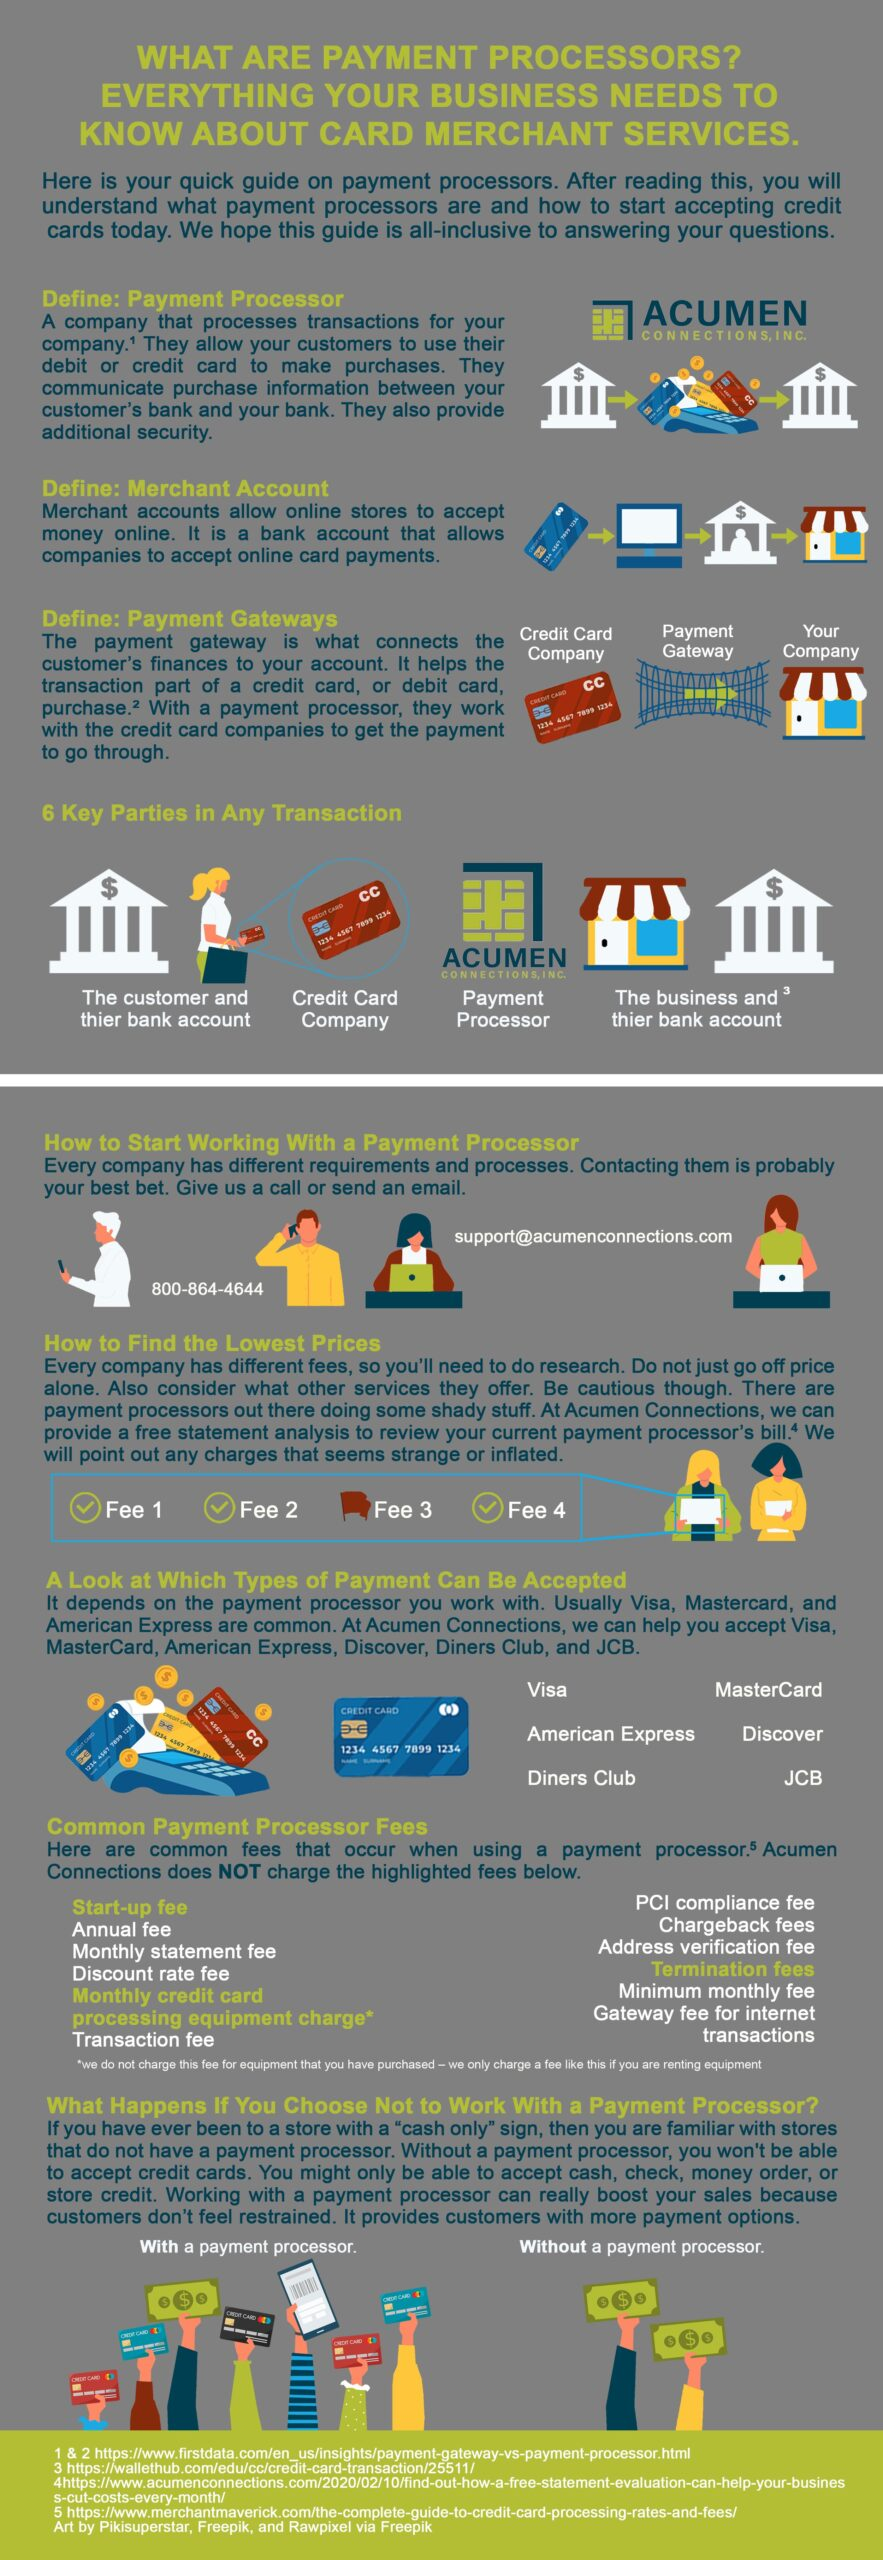 What Are Payment Processors? Everything Your Business Needs to Know About Merchant Services